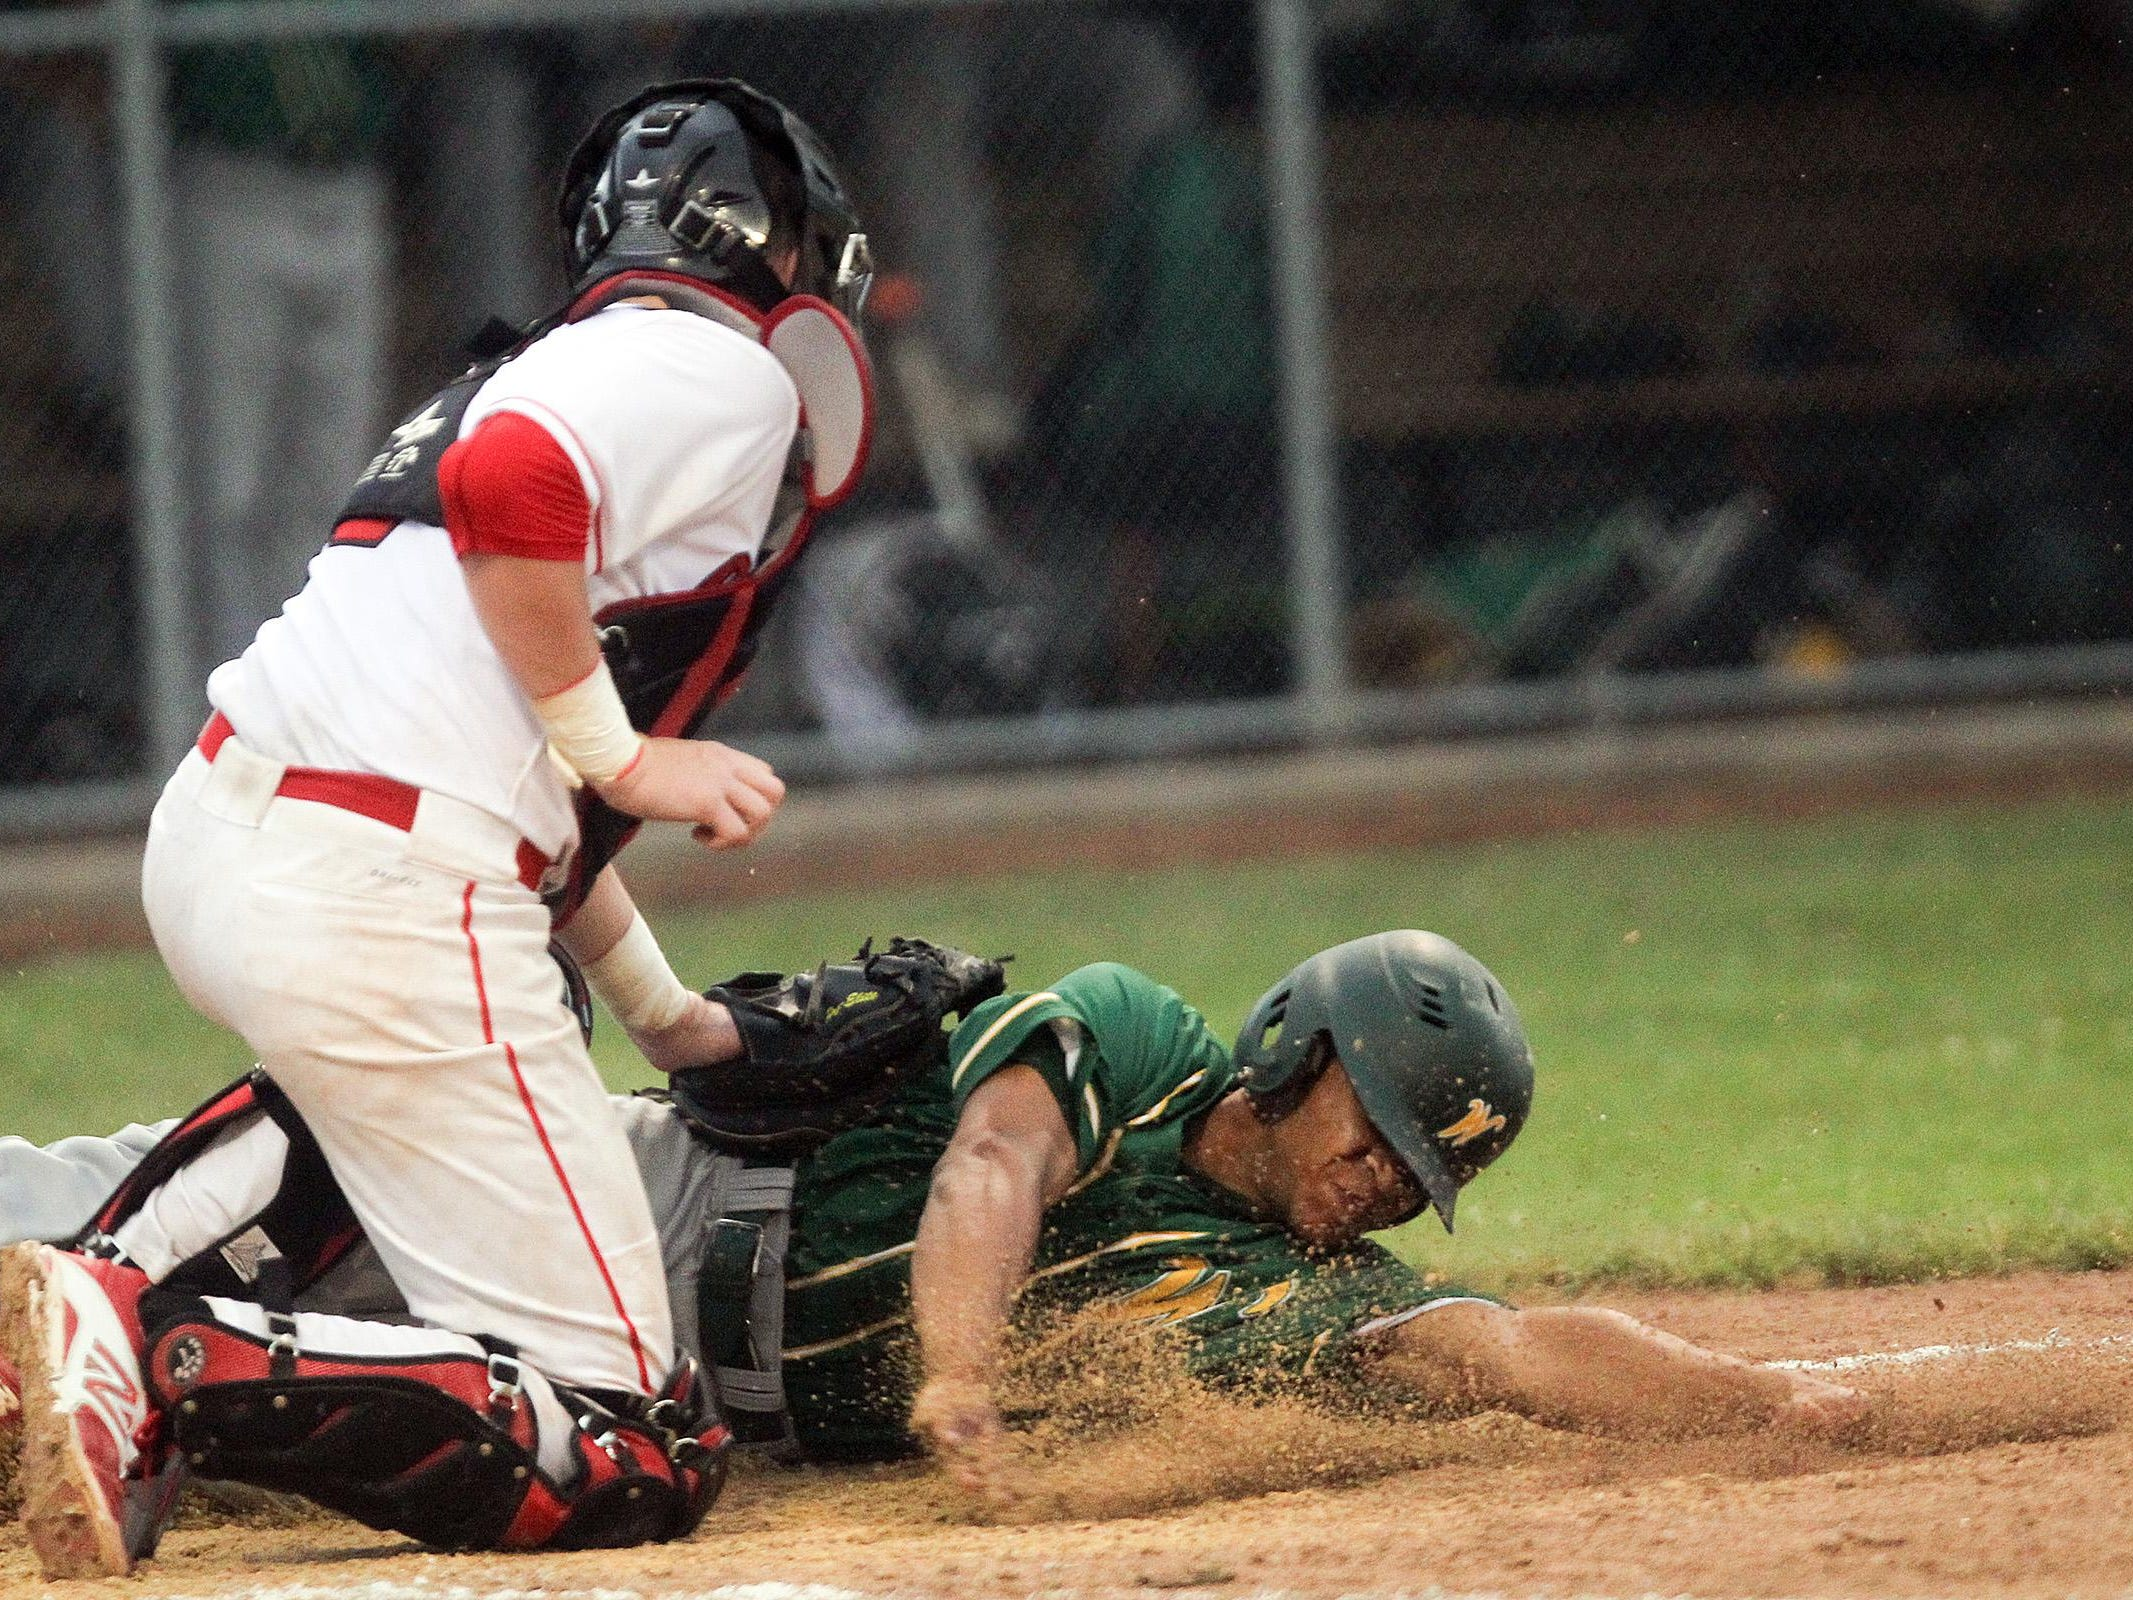 City High's Brett McCleary tags out West High's Mason Carter at home plate during their game at Mercer Park on Monday.